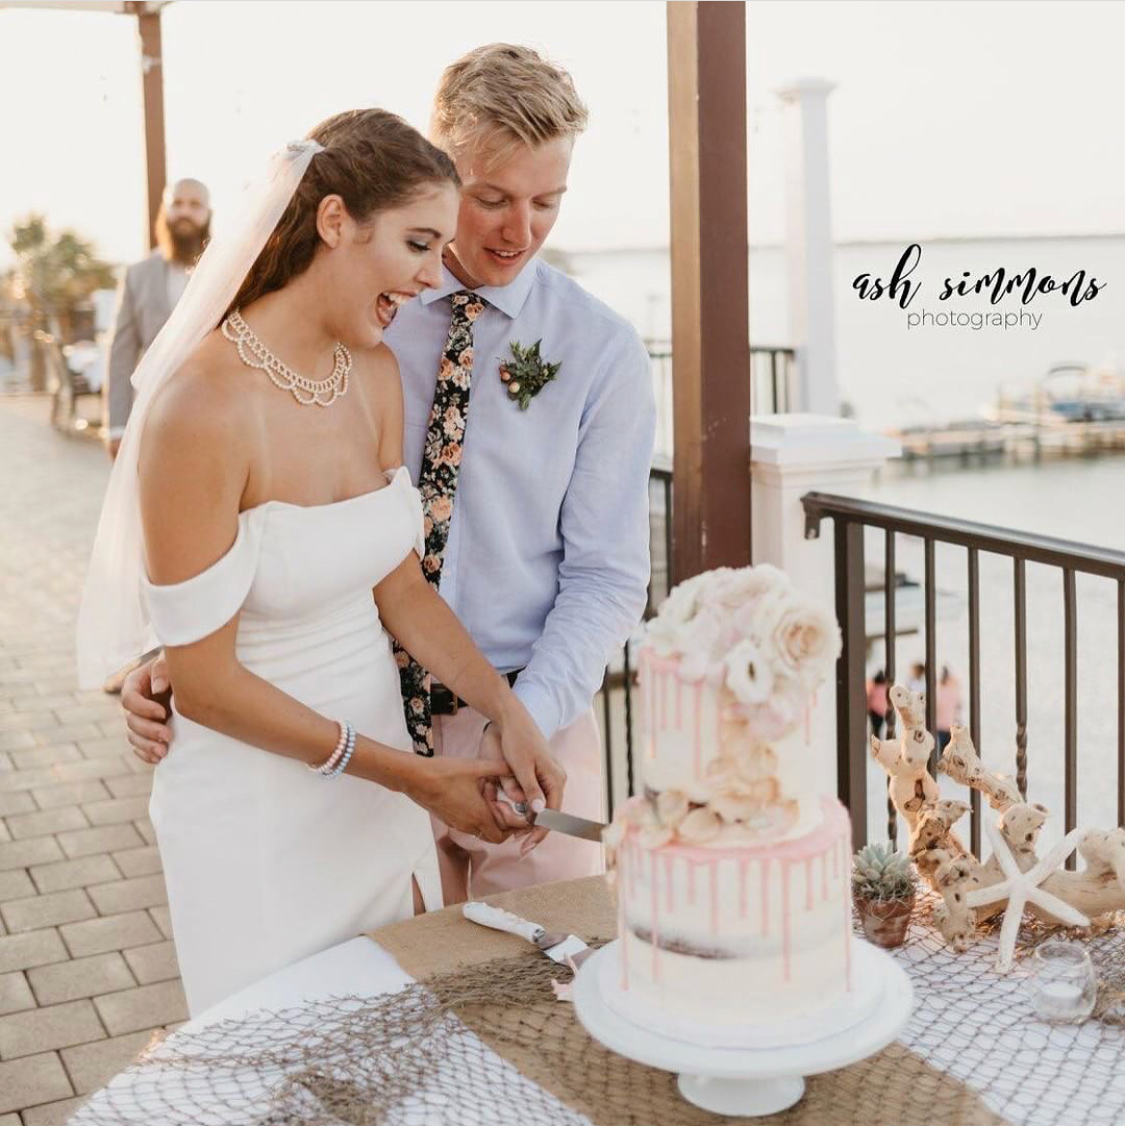 Wedding Cakes - Whether you want a simple scraped naked wedding cake or a five tier ornate design we are here to help make your dream a reality.Book Tasting